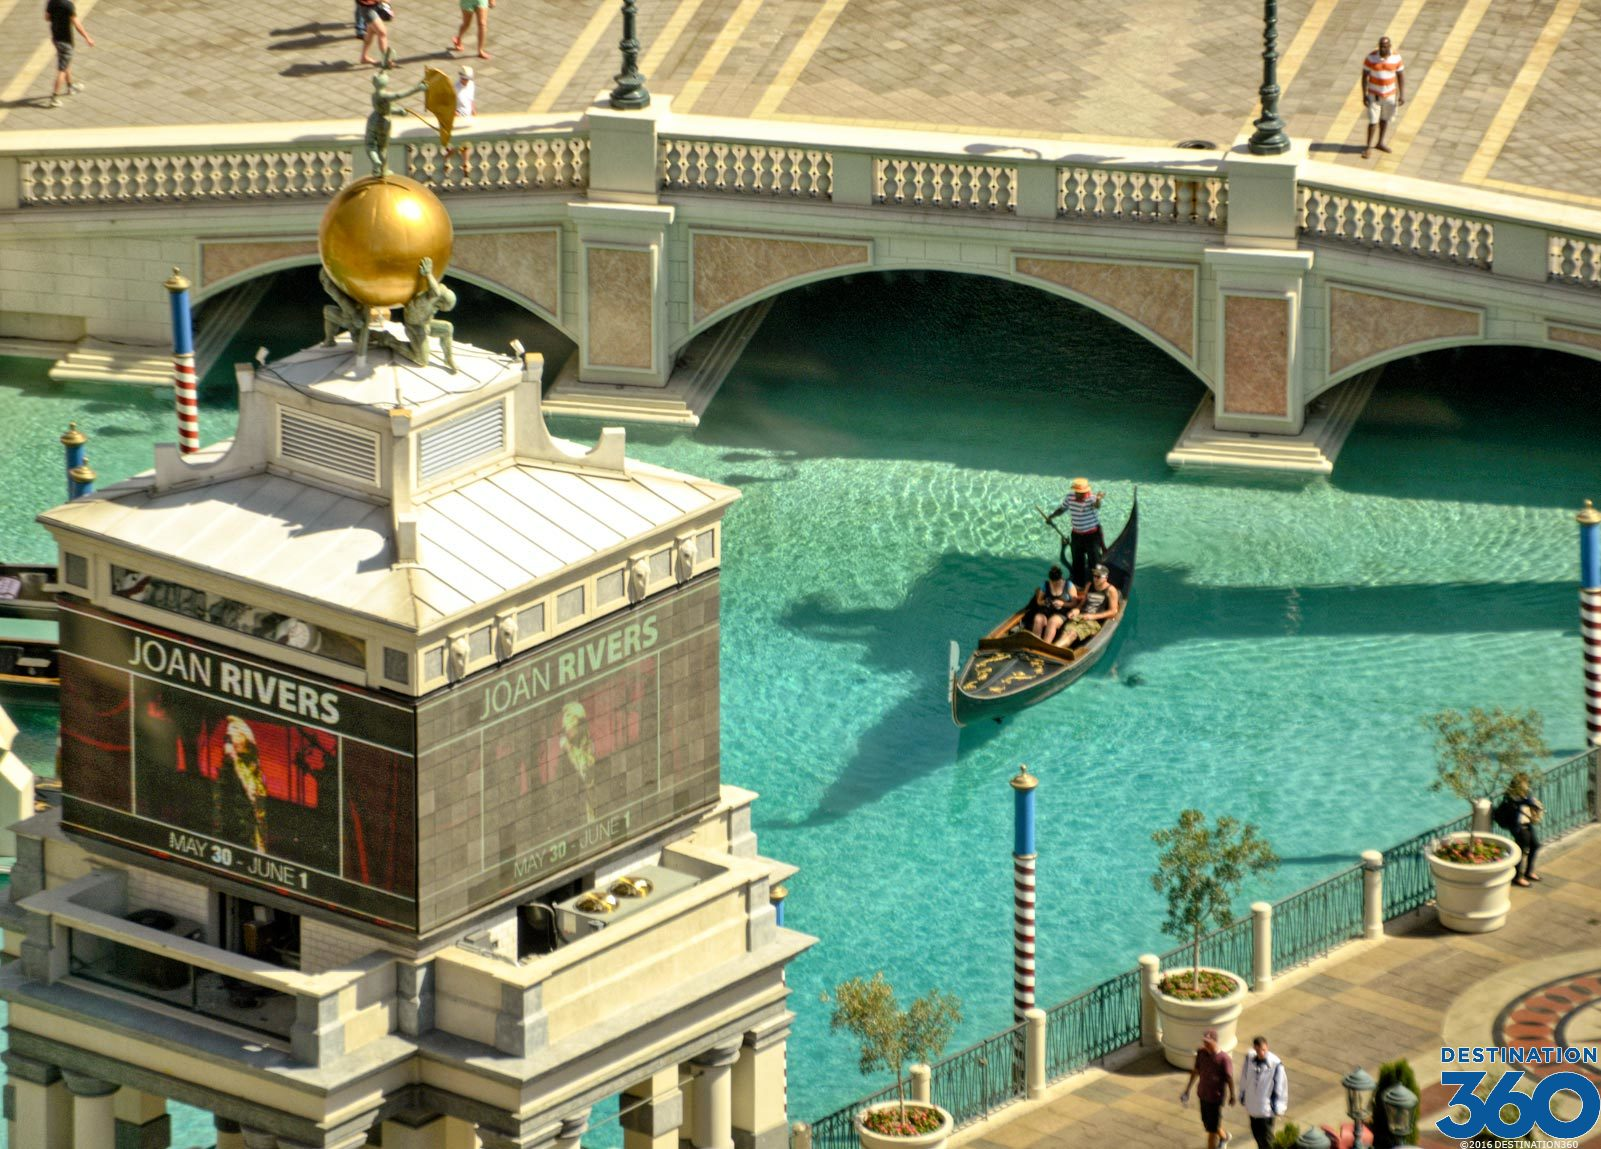 Gondola Rides Virtual Tour